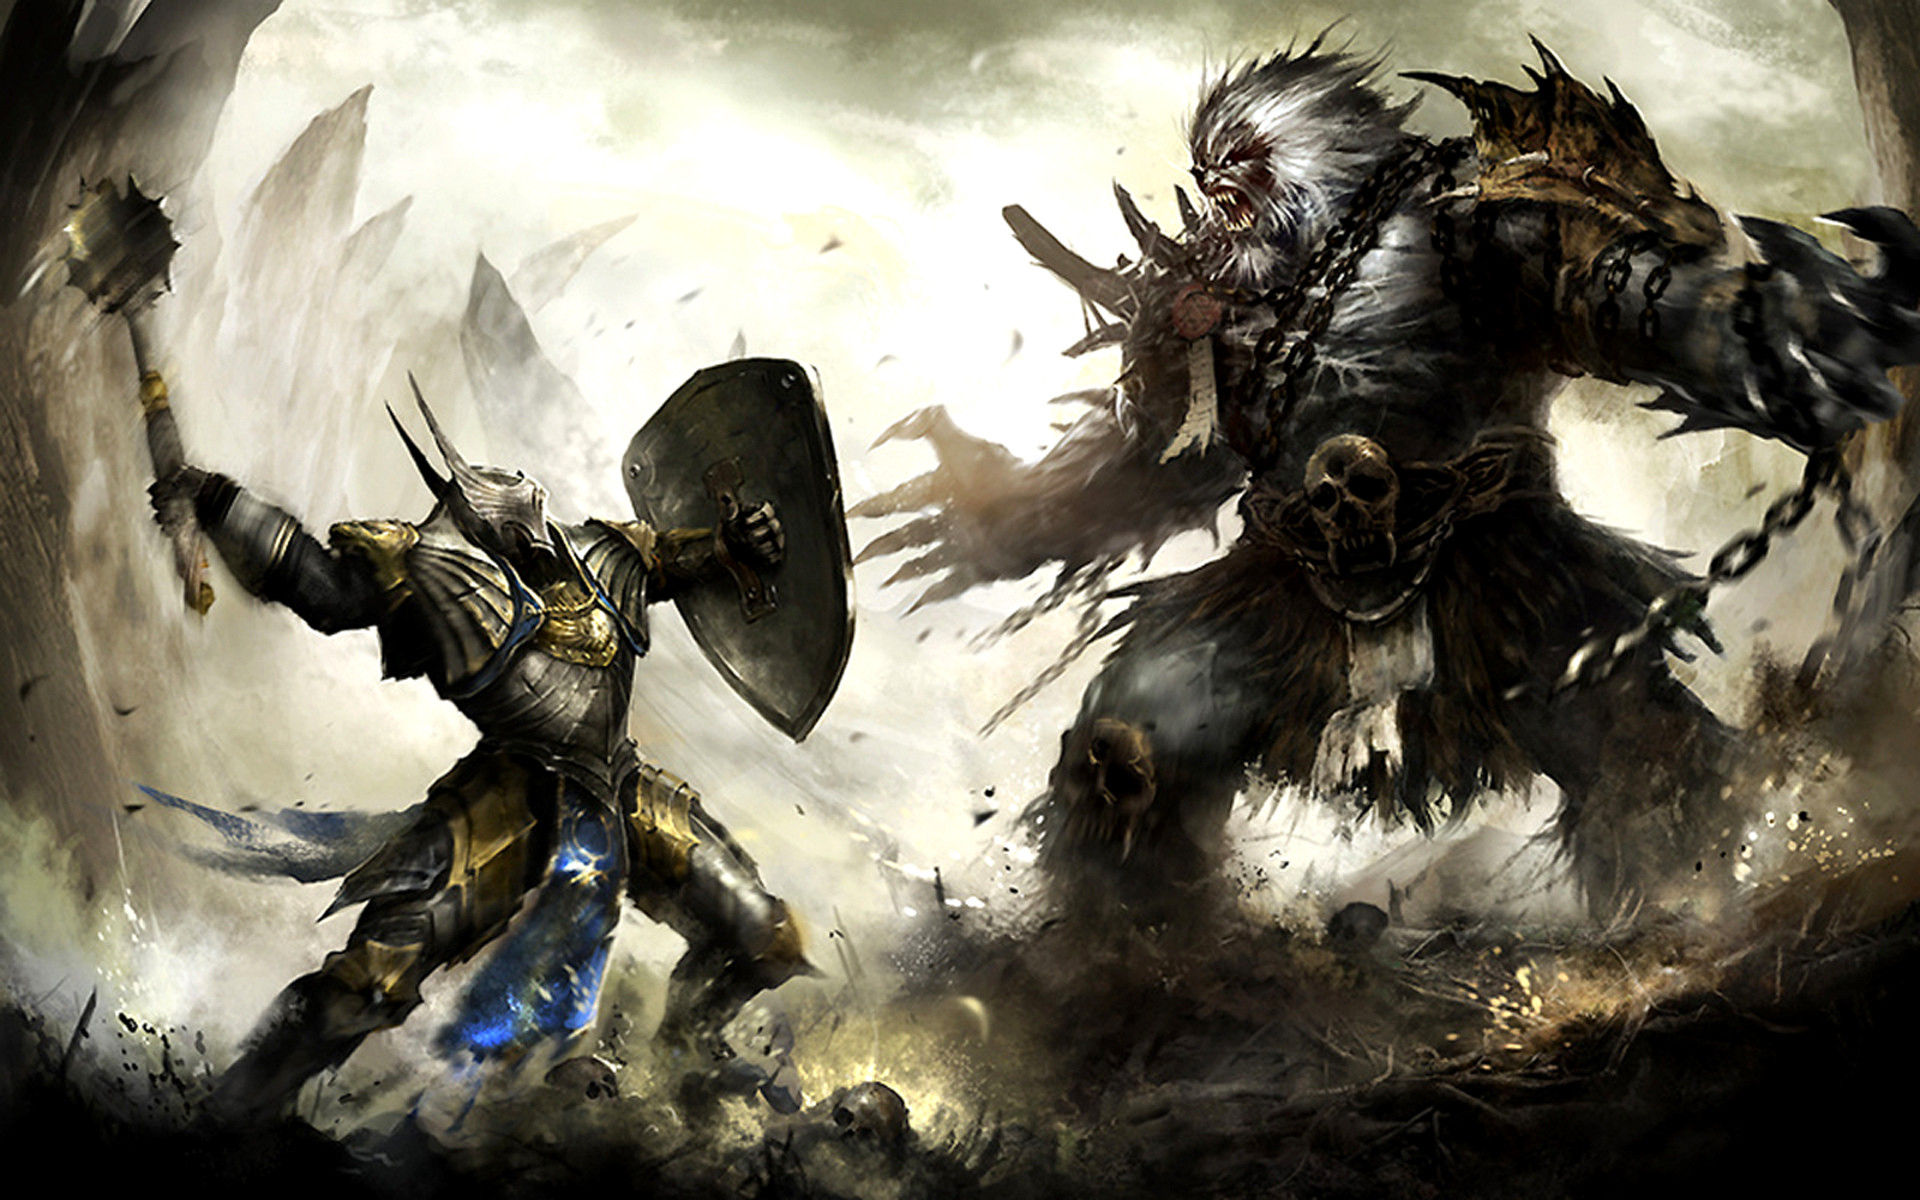 Knight Wallpaper Picture On Wallpaper Hd 1920 x 1200 px 692.31 KB in armor  white templar